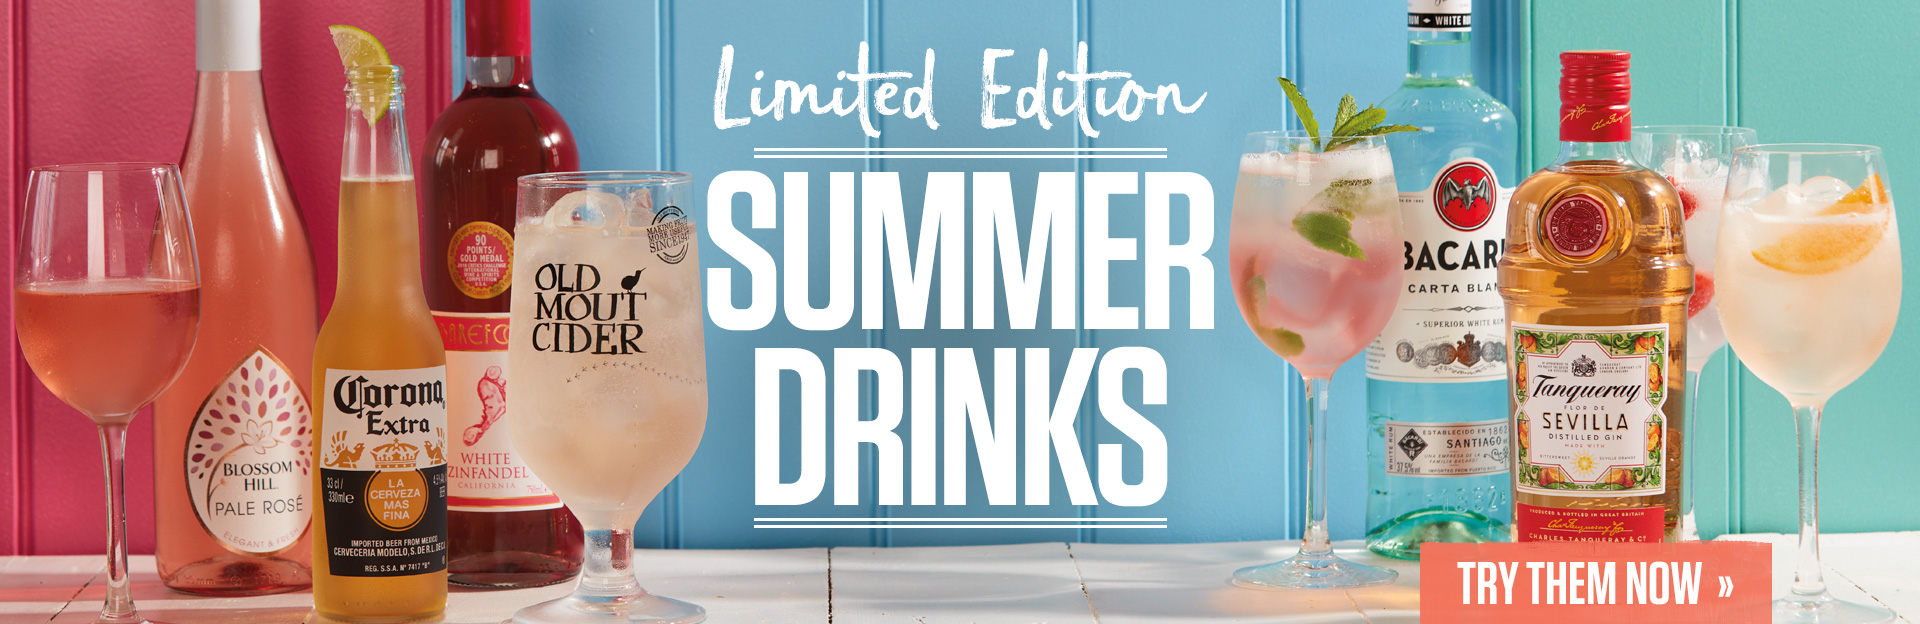 Summer Drinks at The Stanley Arms